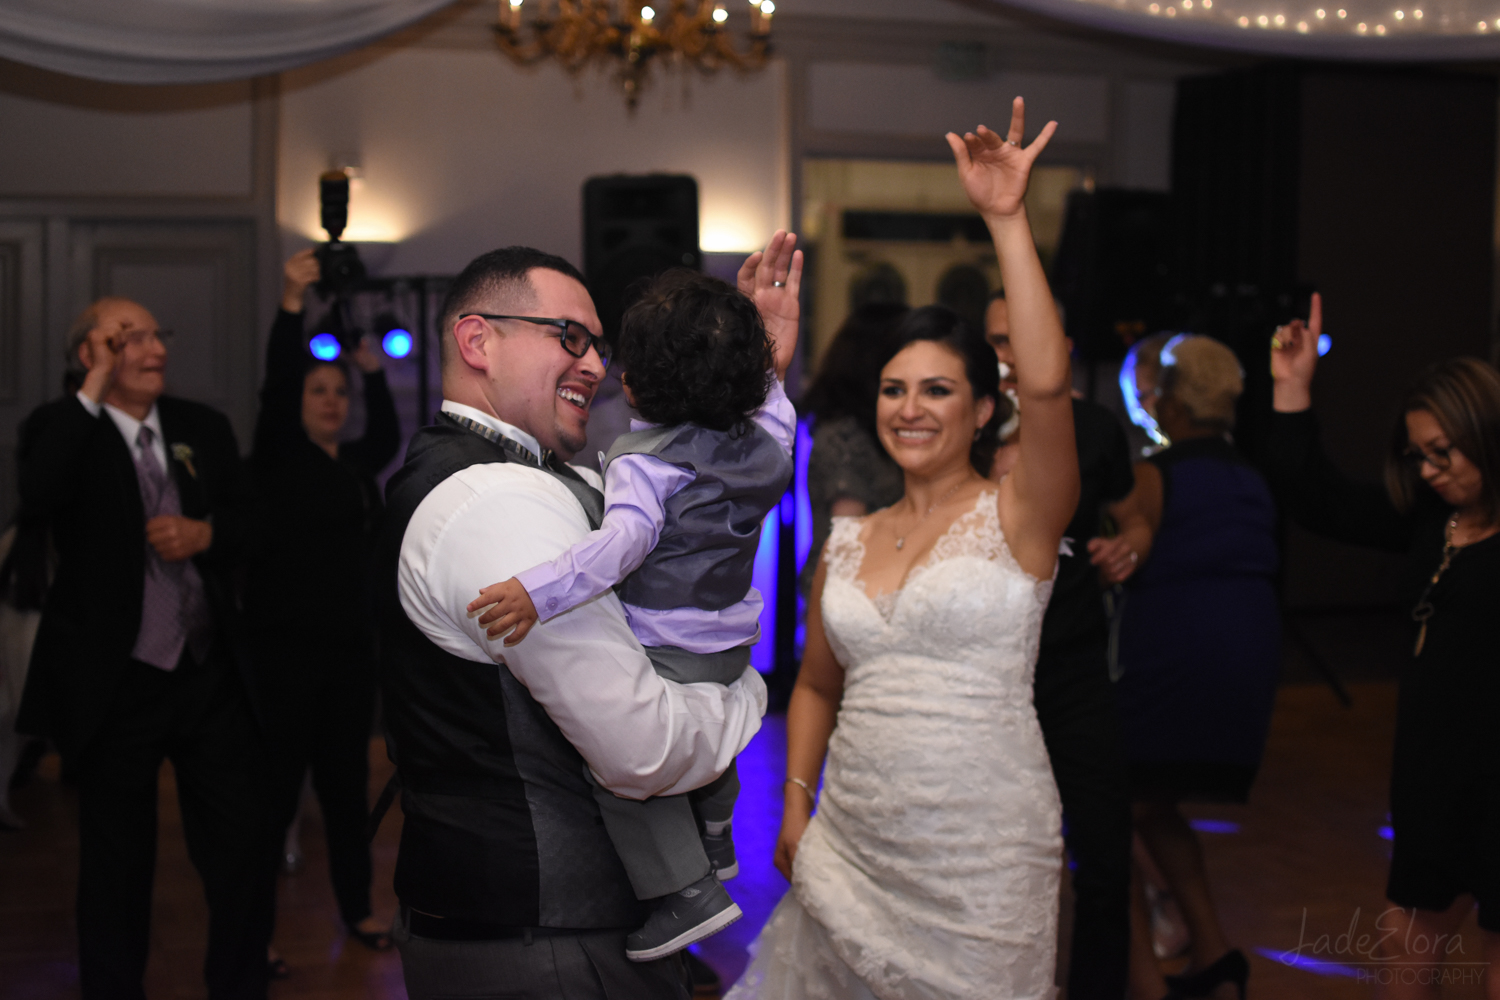 Fun Married Couple Dancing at Reception